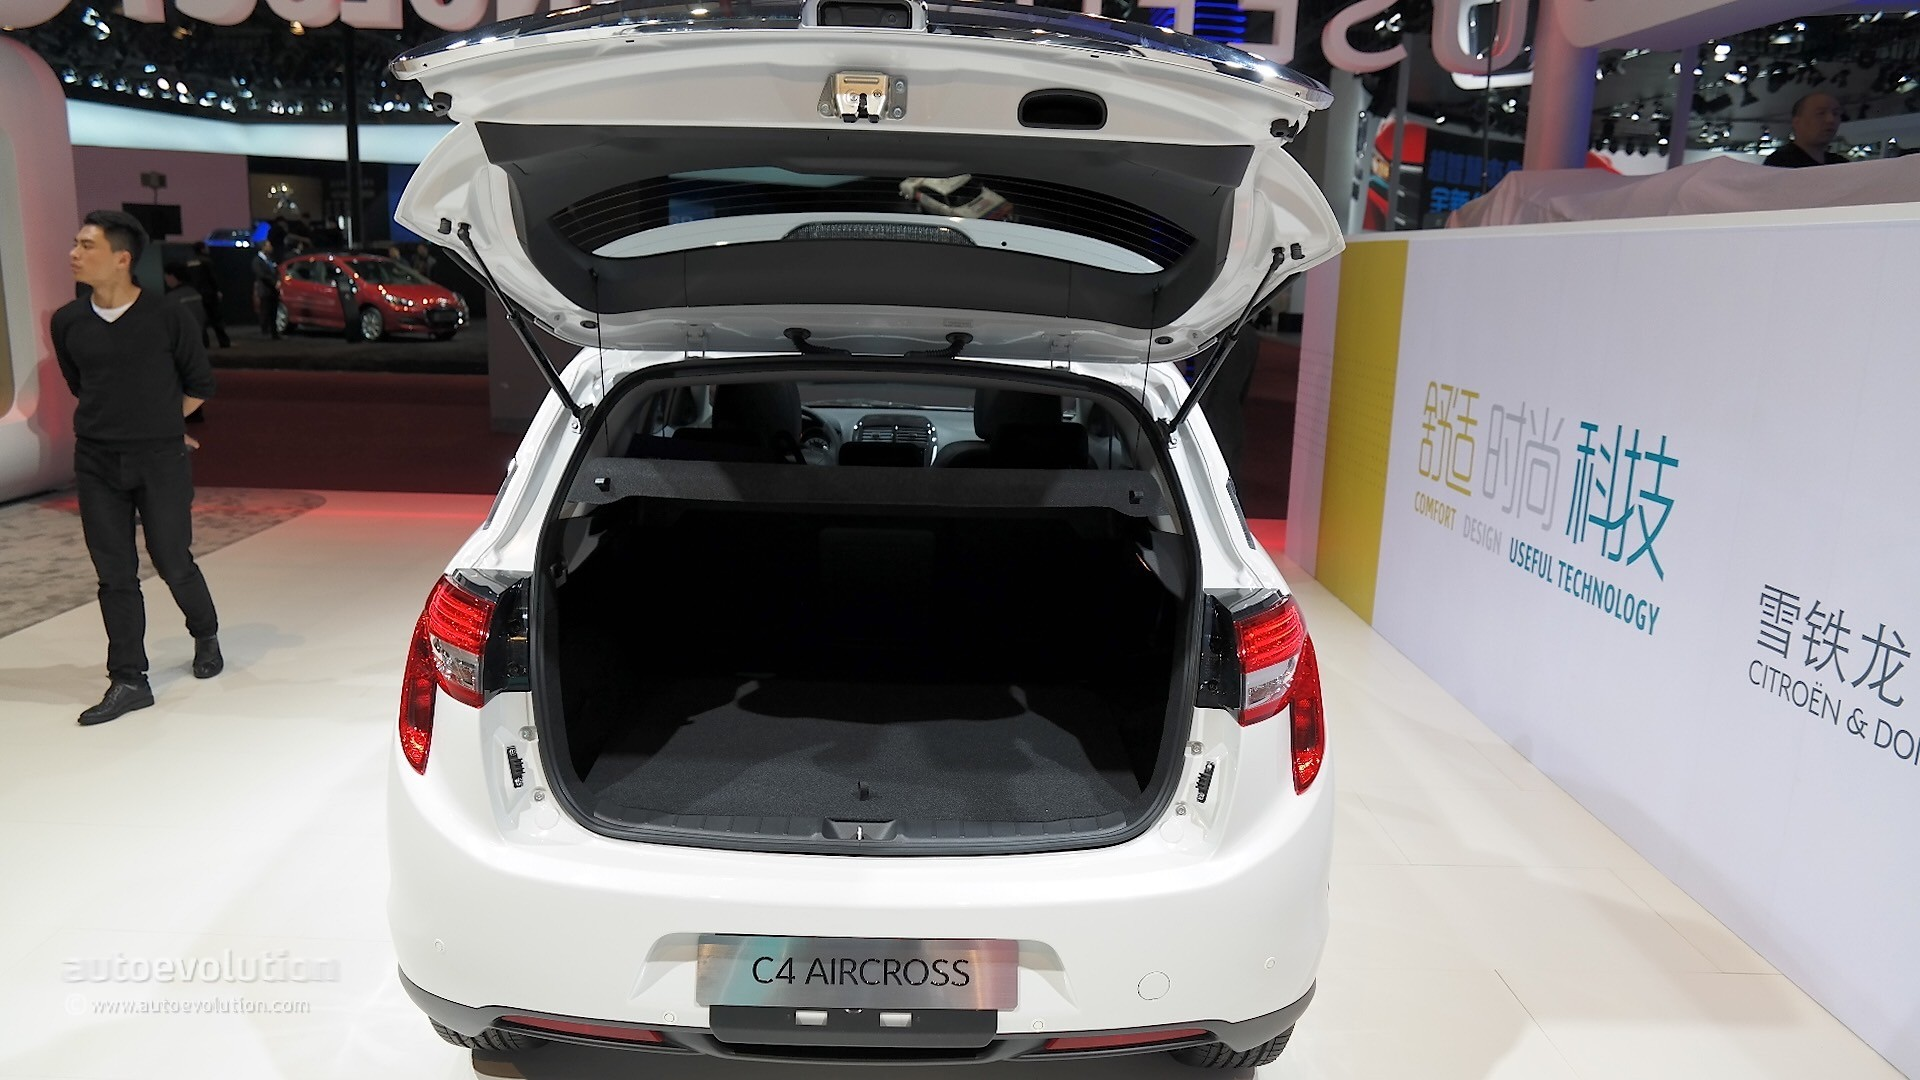 citroen weighs in the old and new with the c4 aircross at. Black Bedroom Furniture Sets. Home Design Ideas